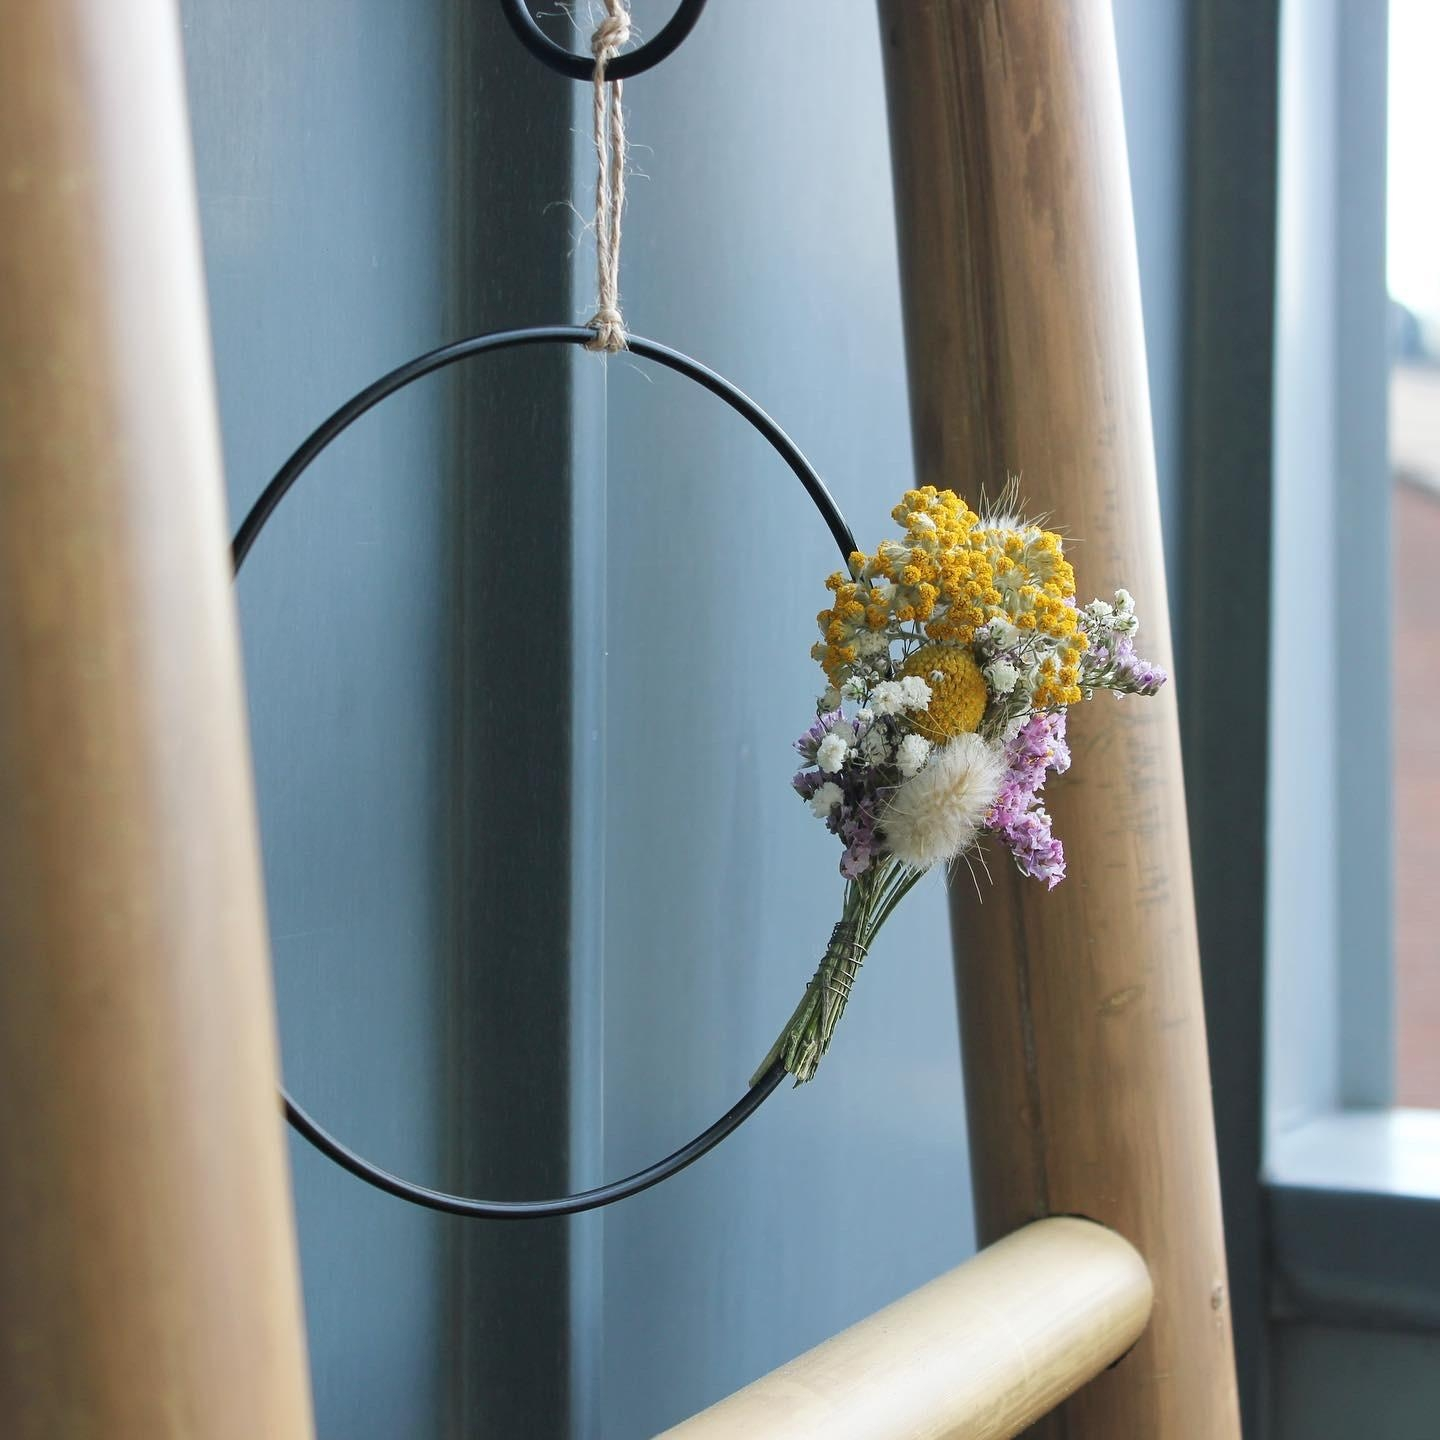 #bloominghoops #instagram.com/blooming.hoops #trockenblumen #reifen #interior #balcony #homedecor #couchliebt